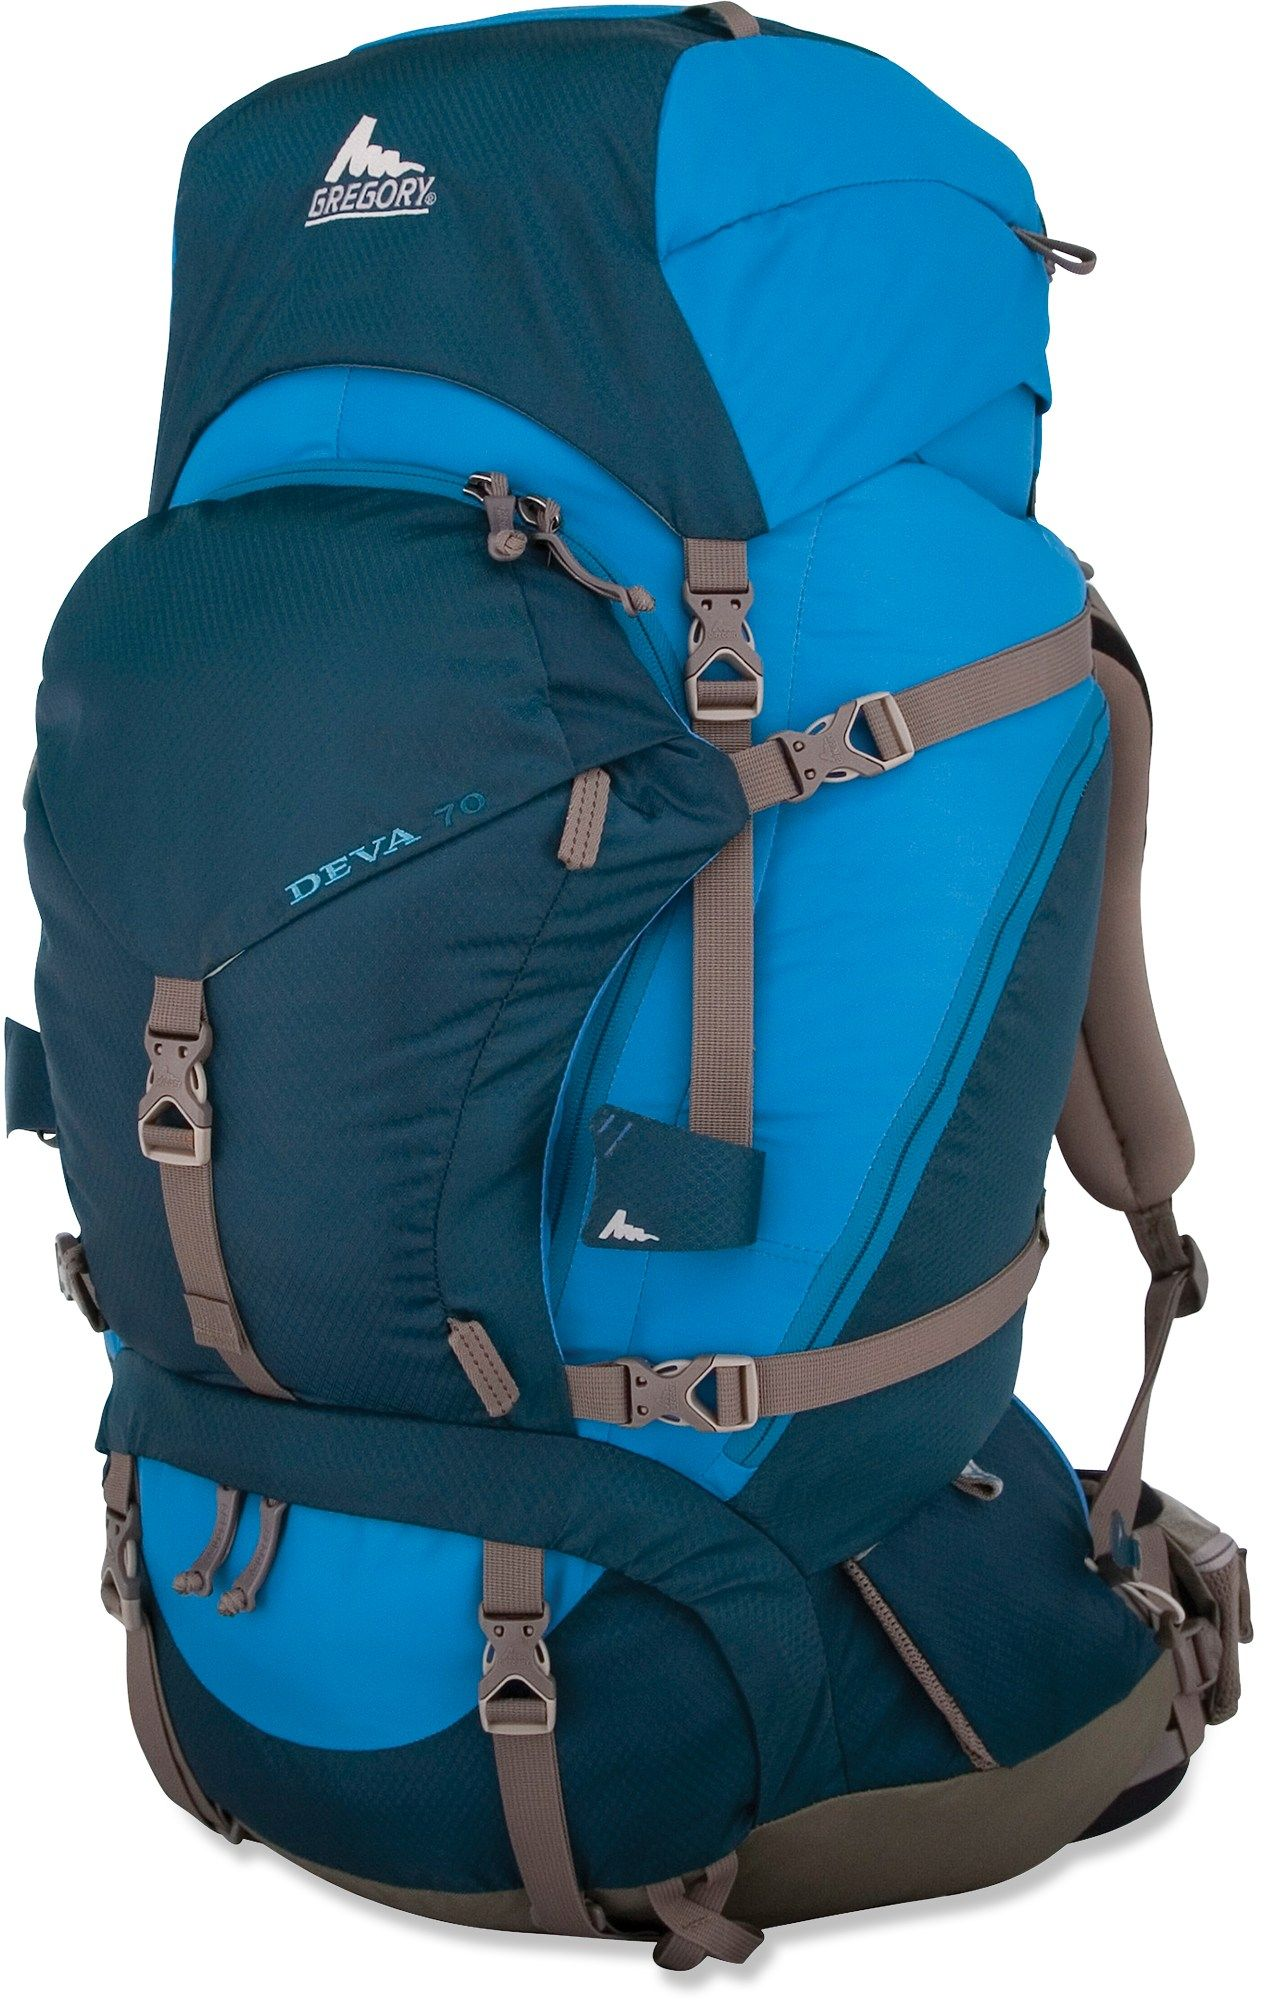 Gregory Deva 70 Pack - Women s - want want want! camping backpacking ... 87ffe4015ff1e